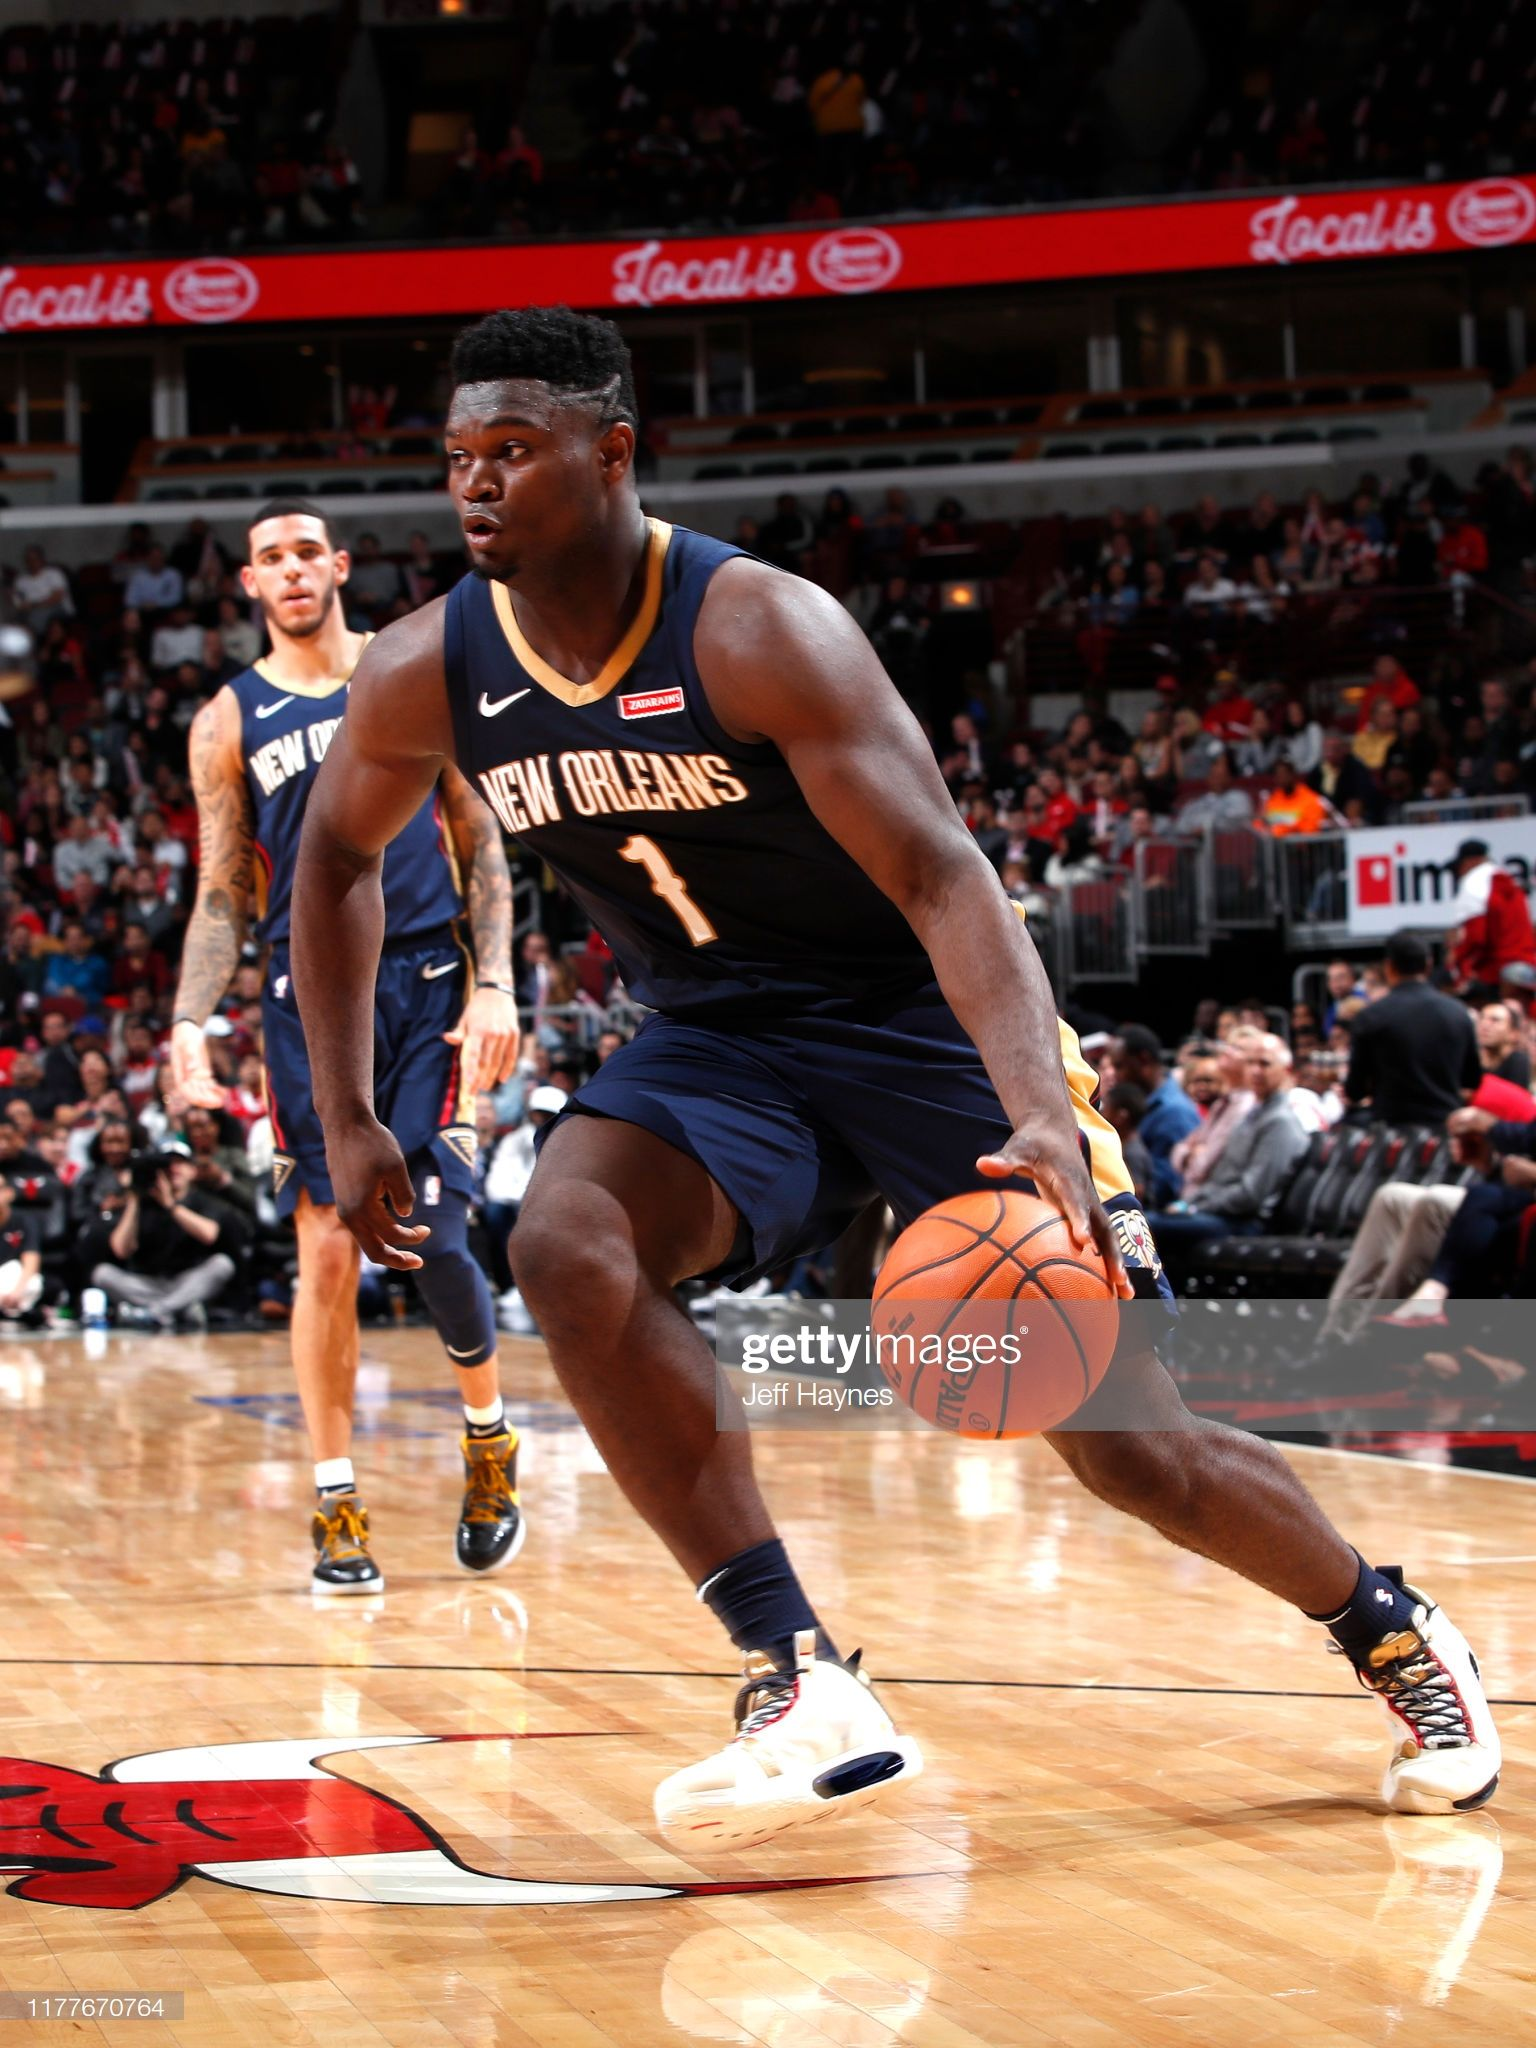 Https Media Gettyimages Com Photos Zion Williamson Of The New Orleans Pelicans Handles The Ball Against Picture Id1177670764 S 2048x2048 With Images Zion